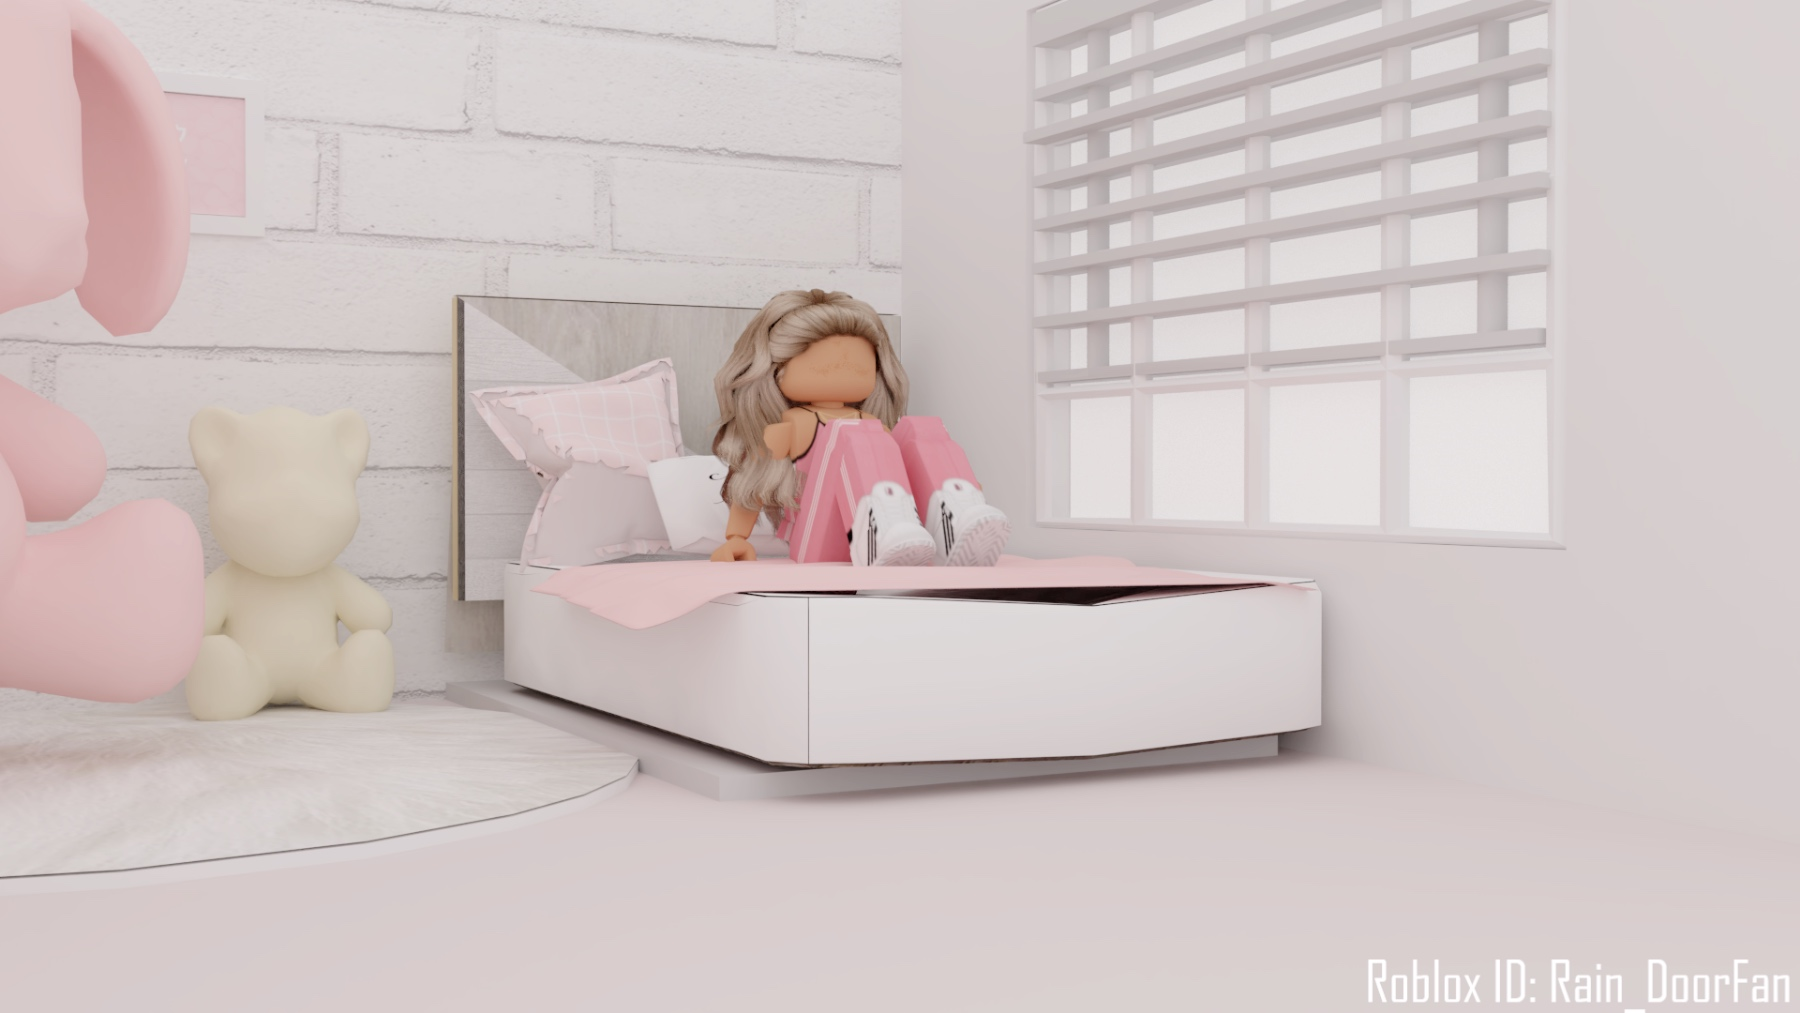 Roblox Gfx Lazy Girl In 2020 Roblox Animation Roblox Roblox Pictures